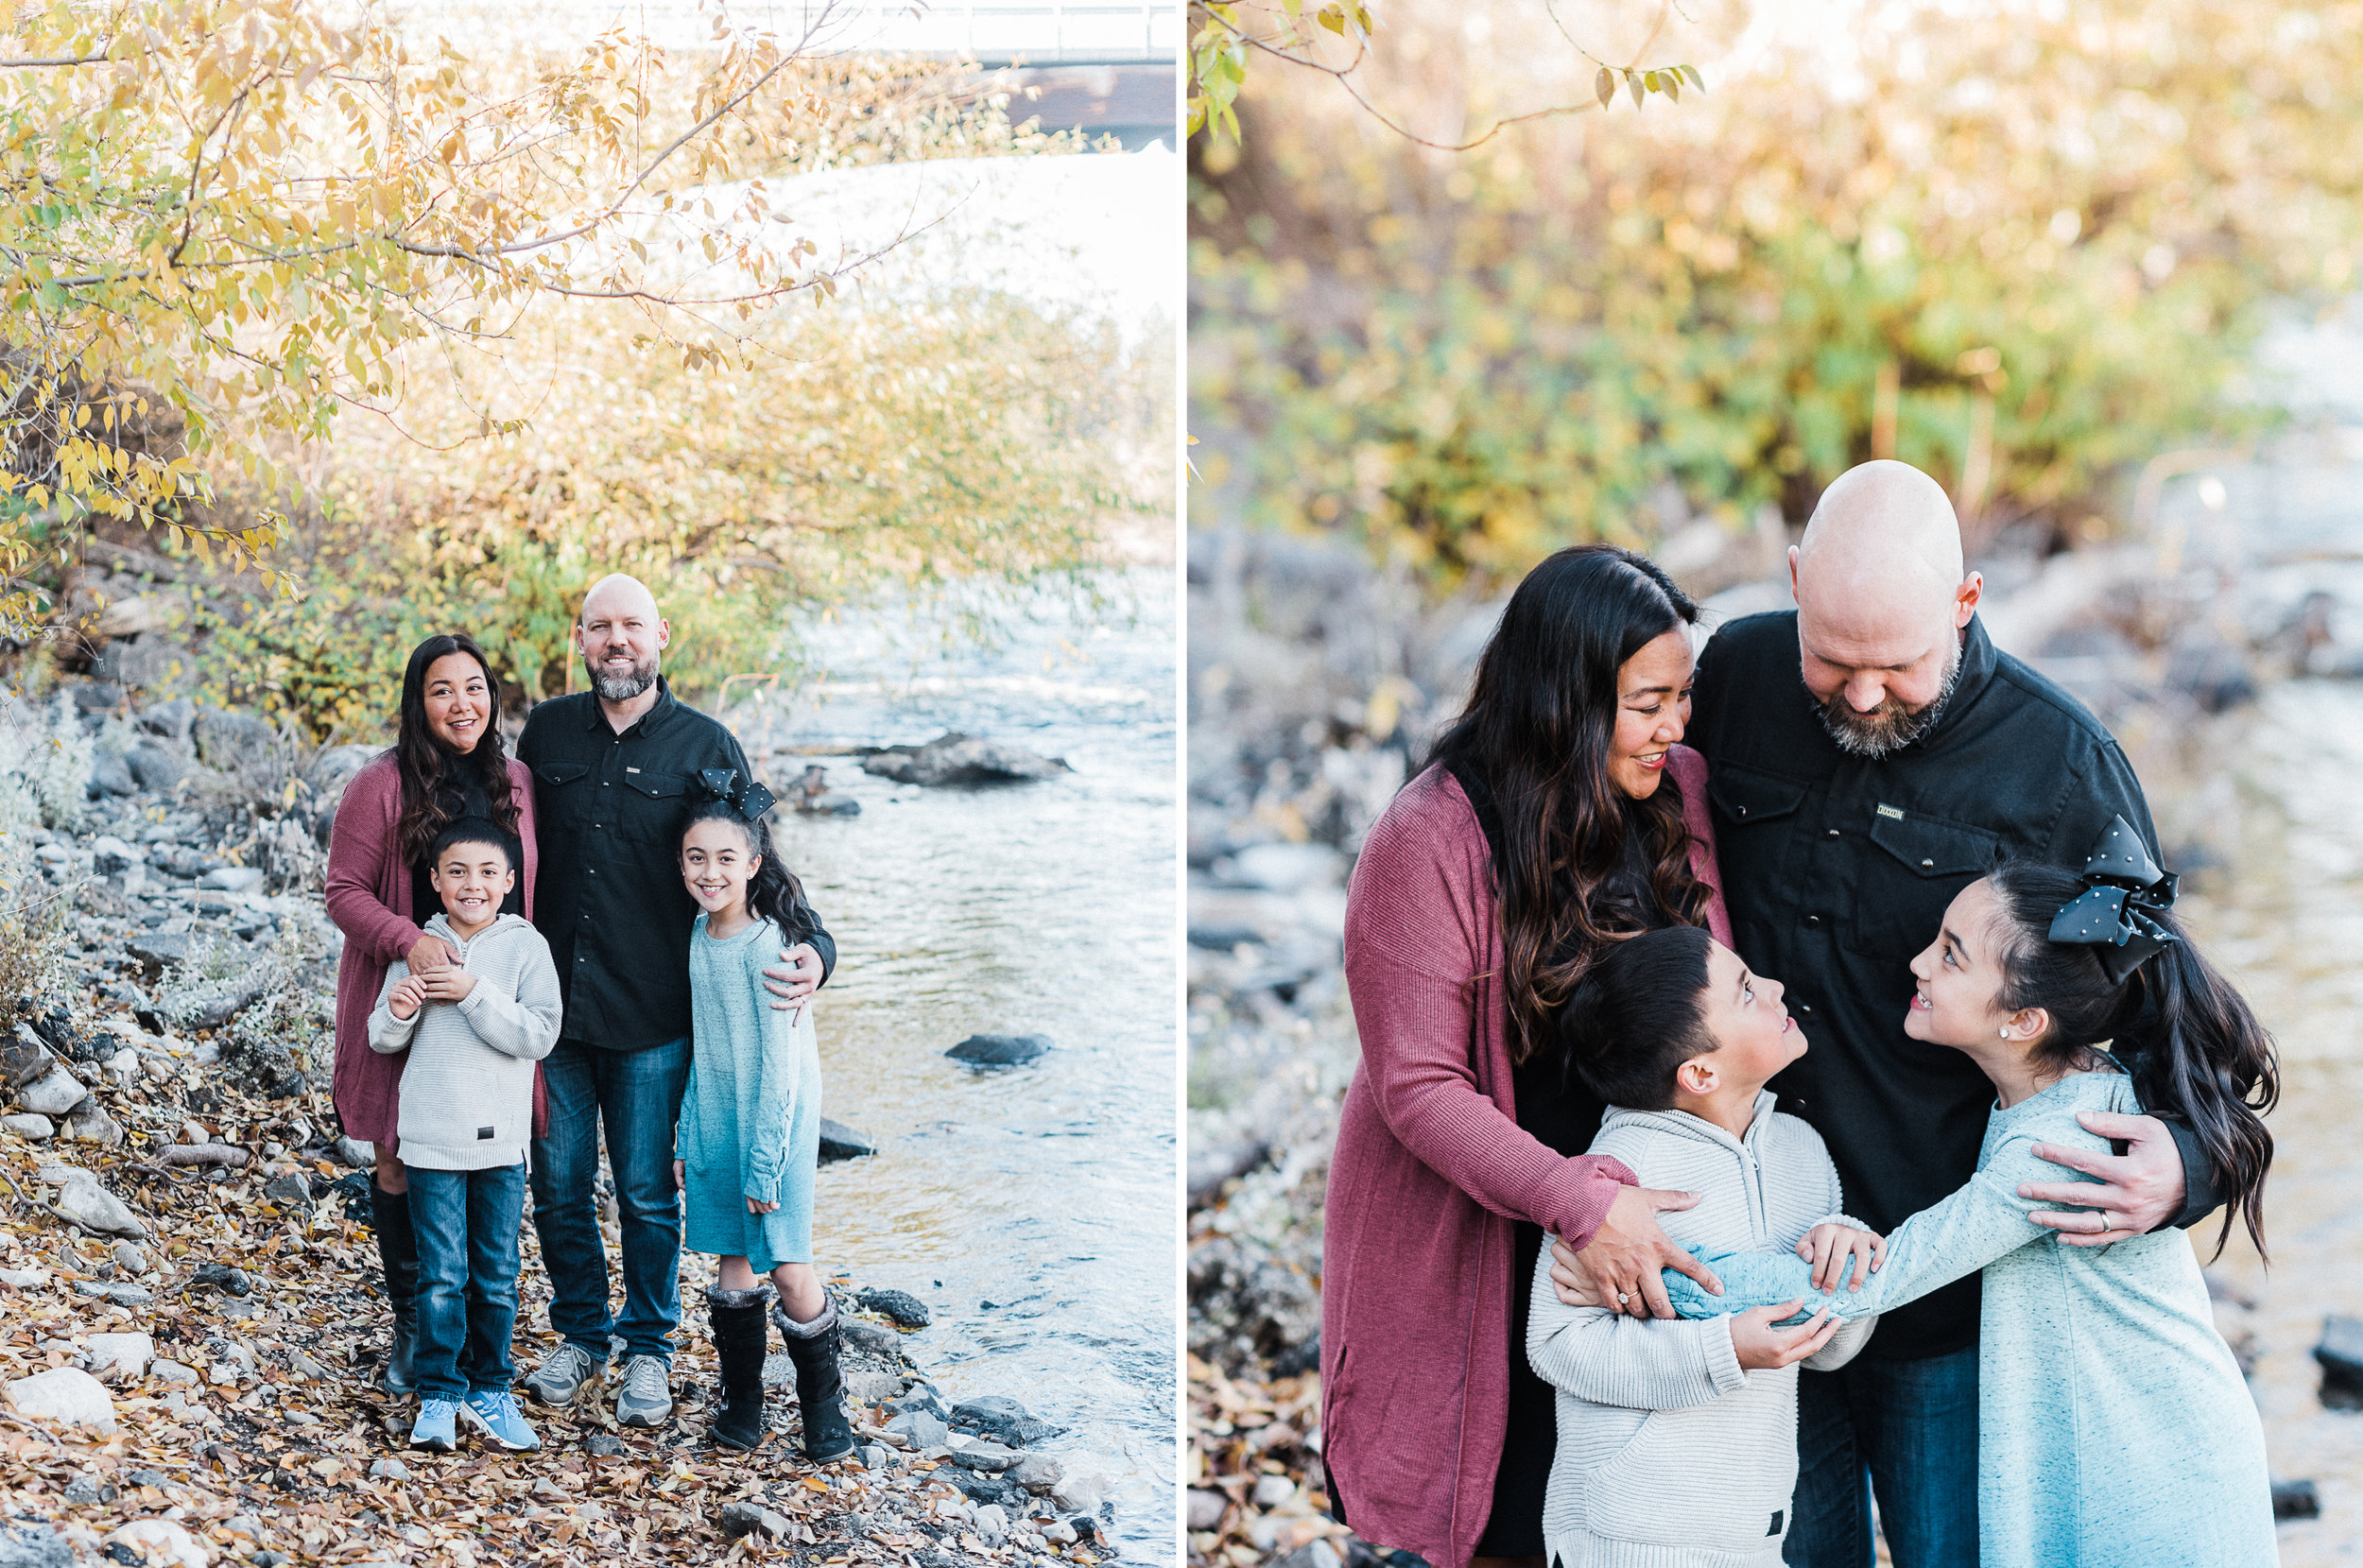 spokane-family-session-solberg4.jpg